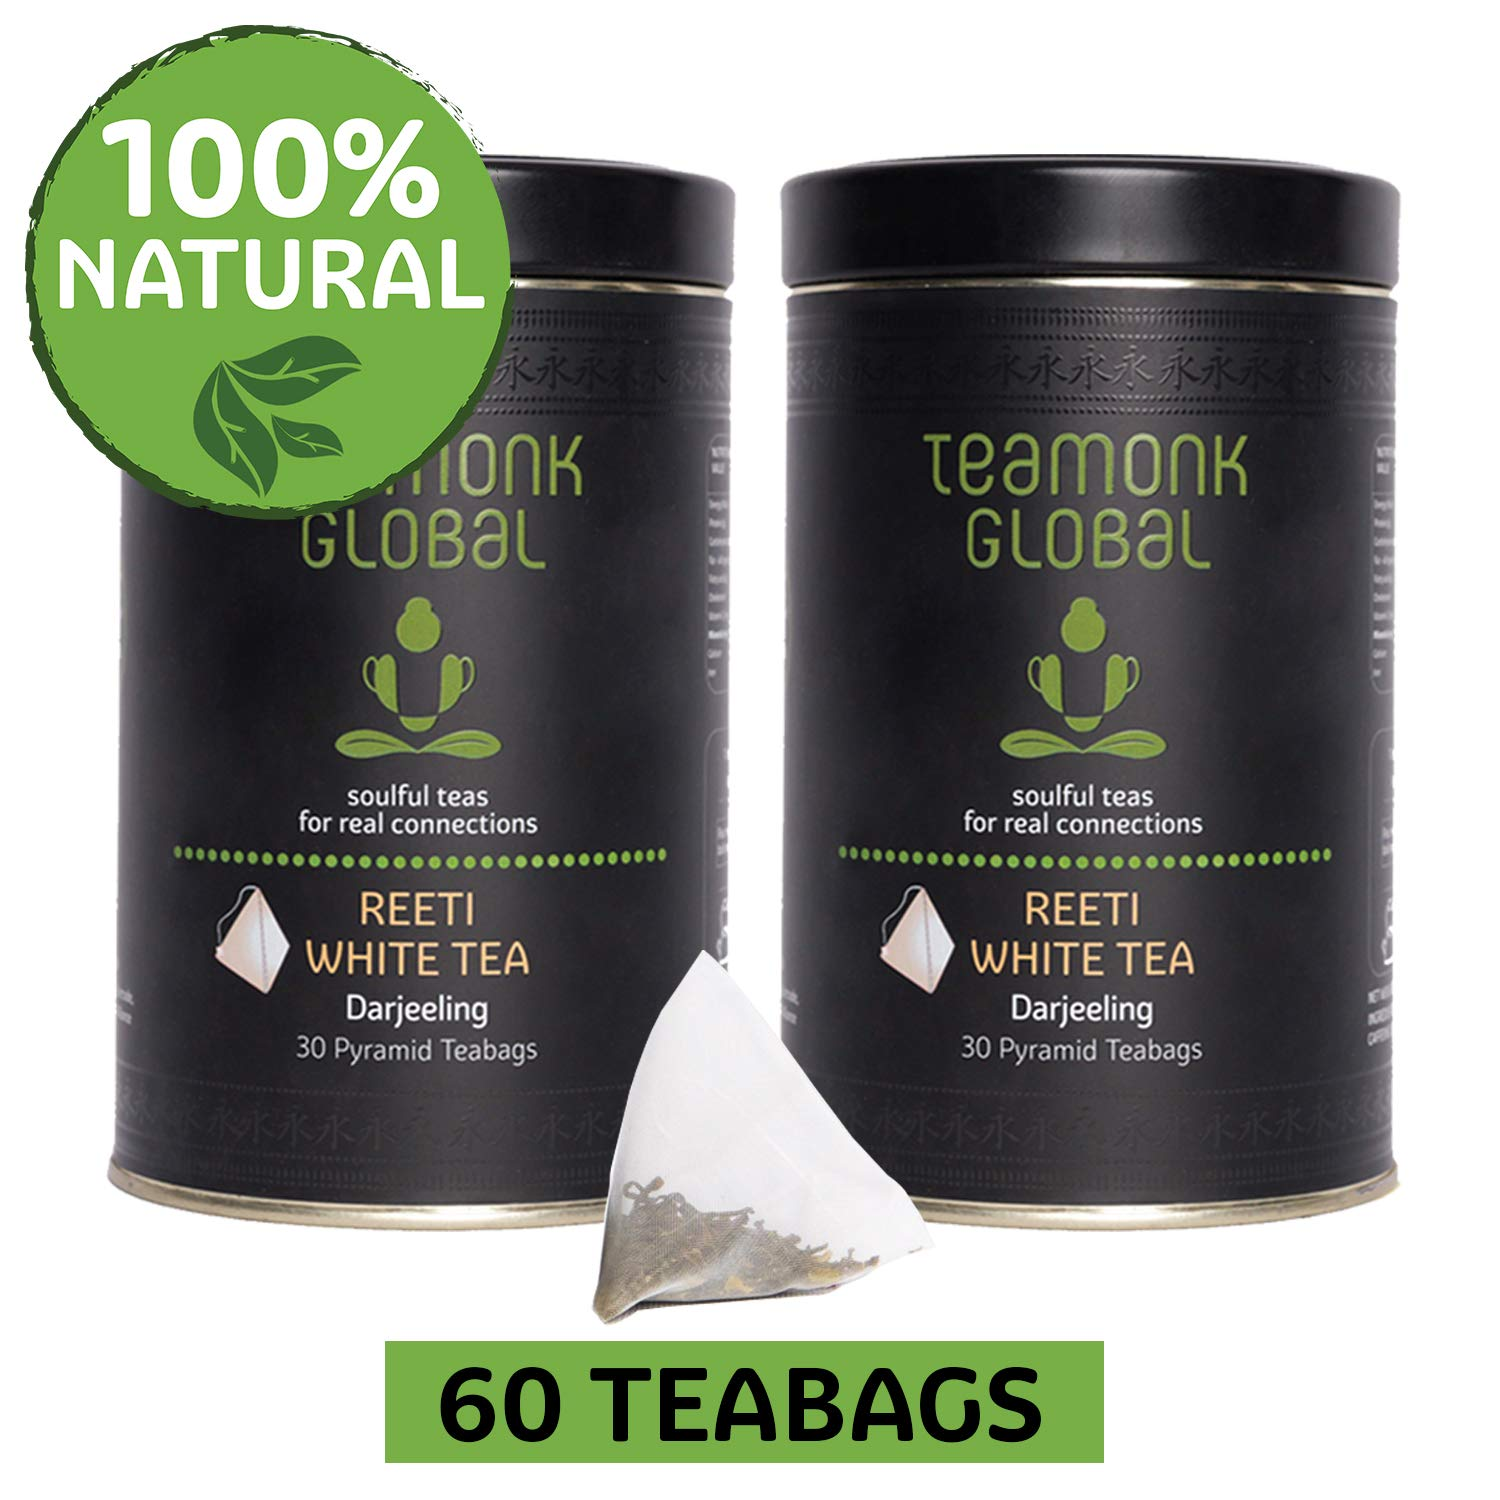 Darjeeling Organic White Tea, 60 Teabags-Pack of 2 (30 Teabags each) | Nourishes Glow from Within, Helps Build Immunity | 100% Natural Whole Leaf | No Additives